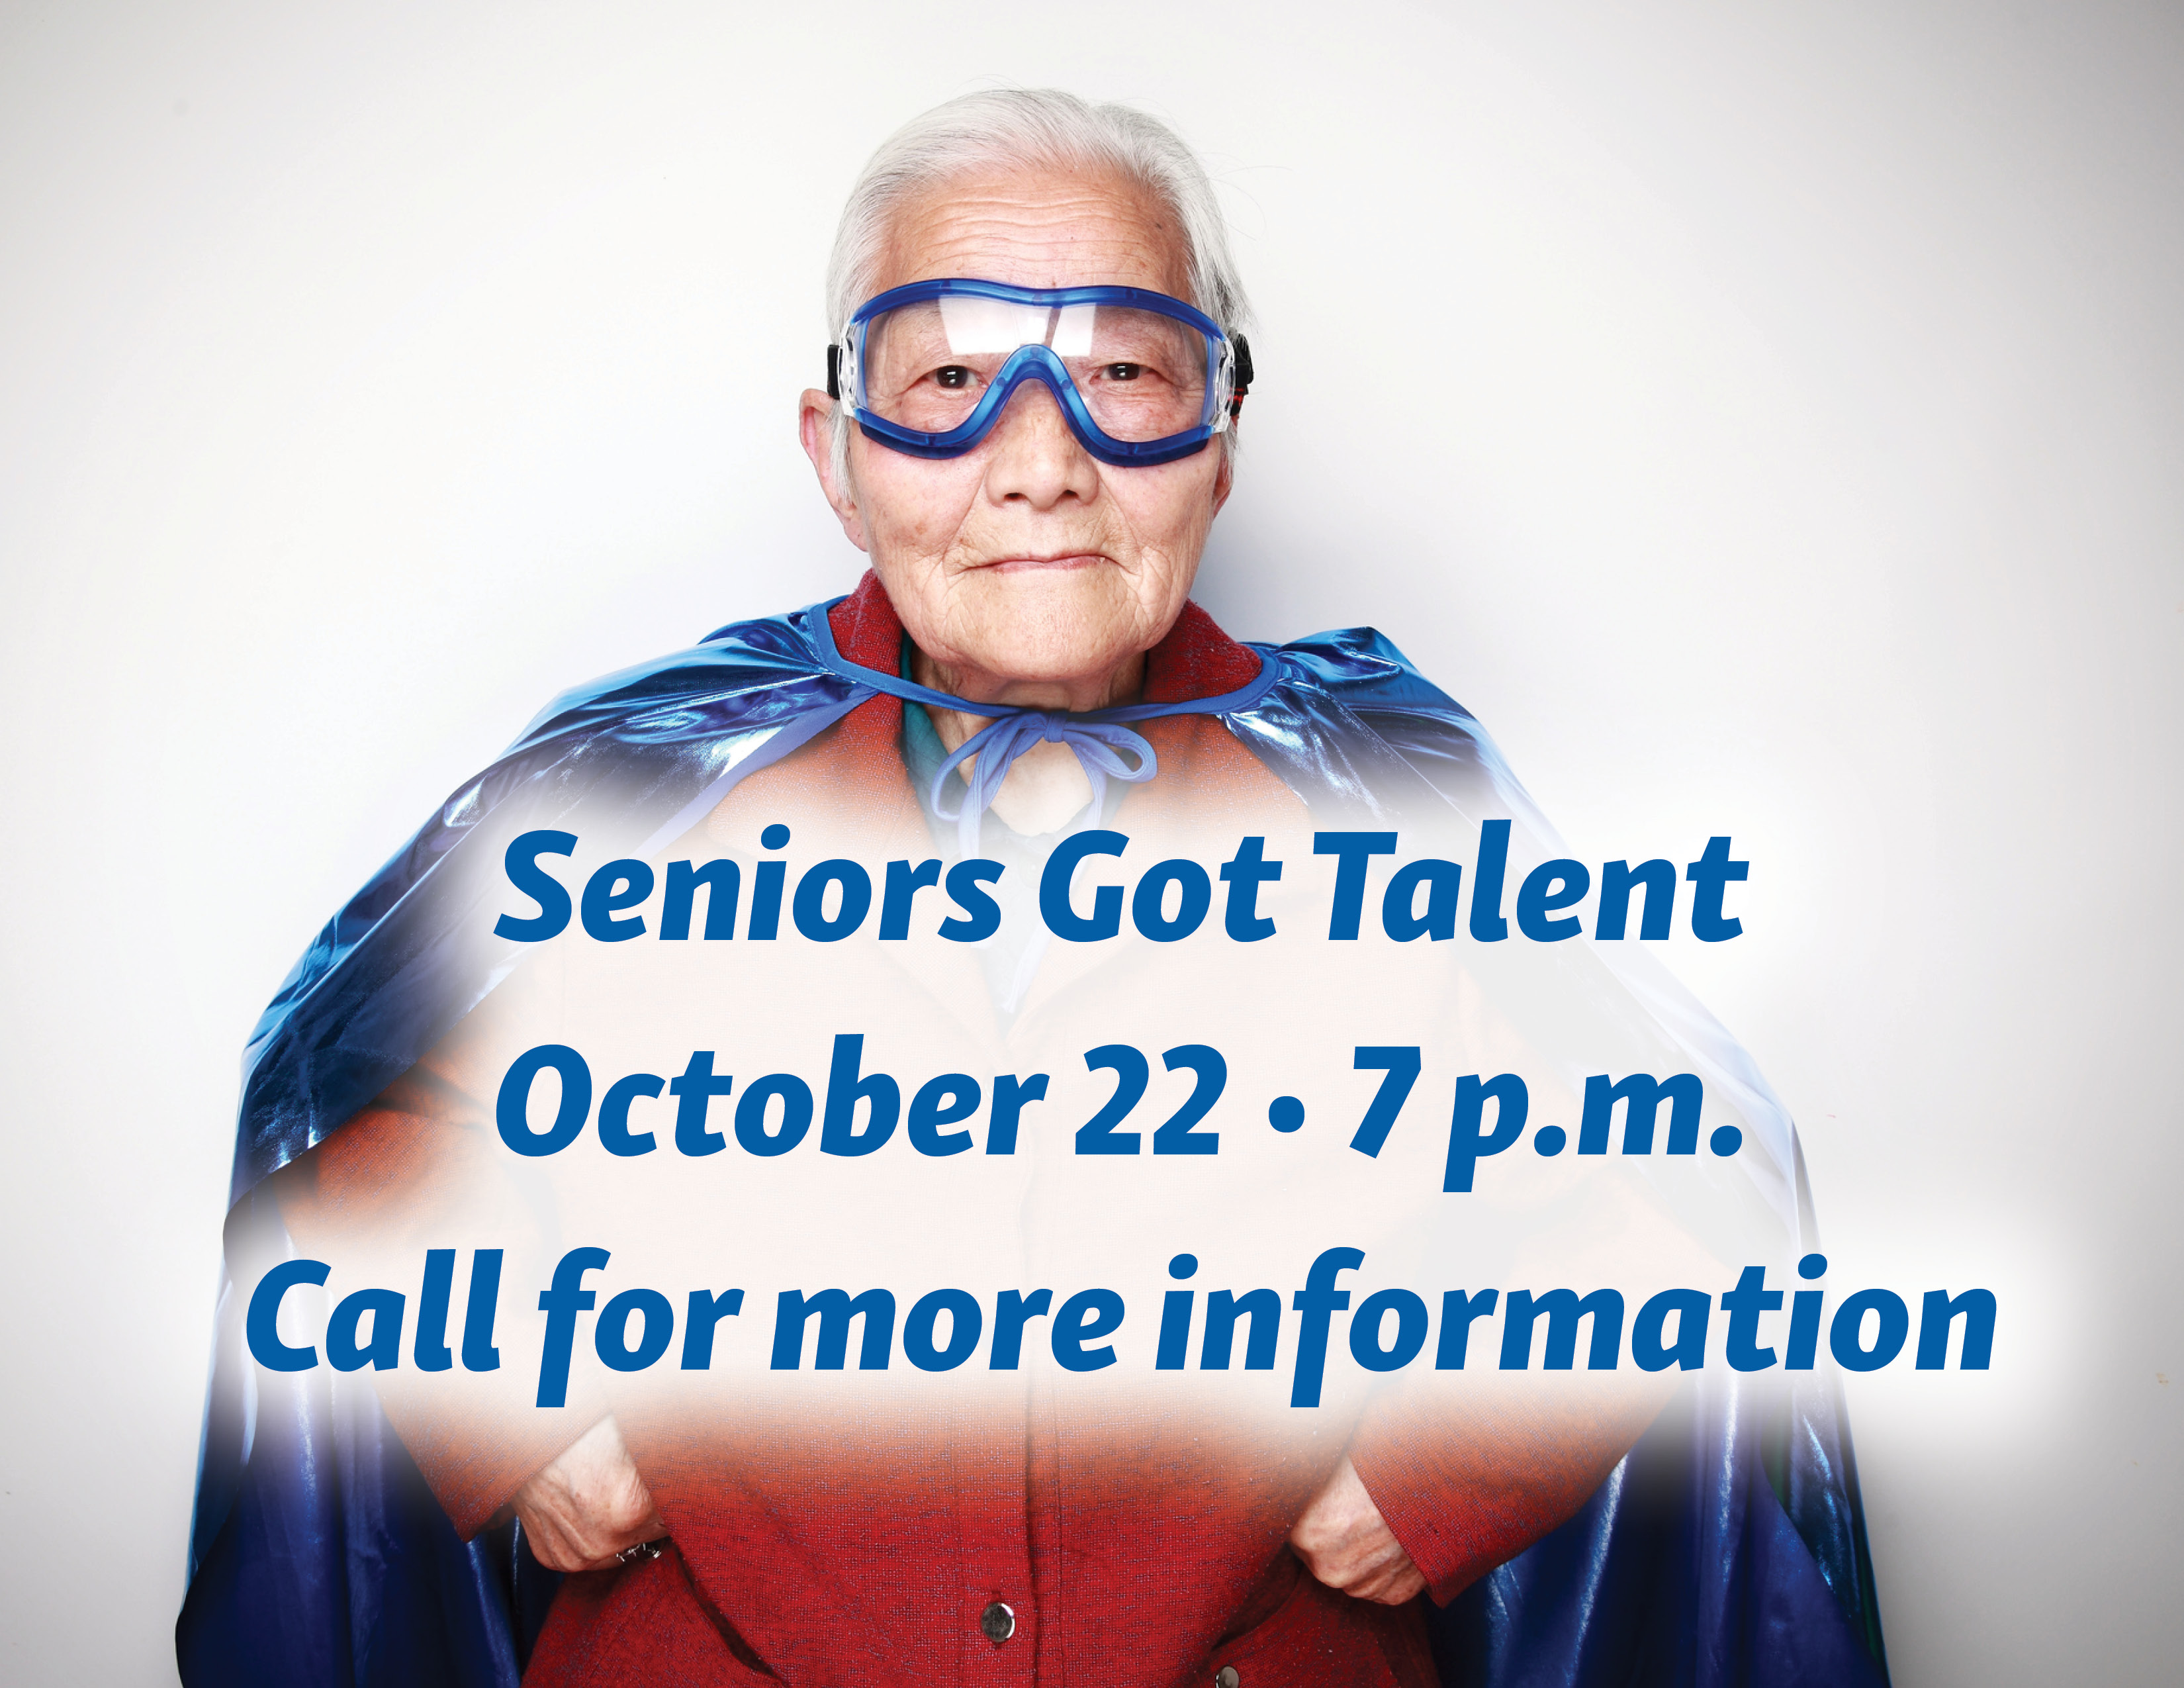 Morning Pointe Senior Living seeking performers for Seniors Got Talent competition